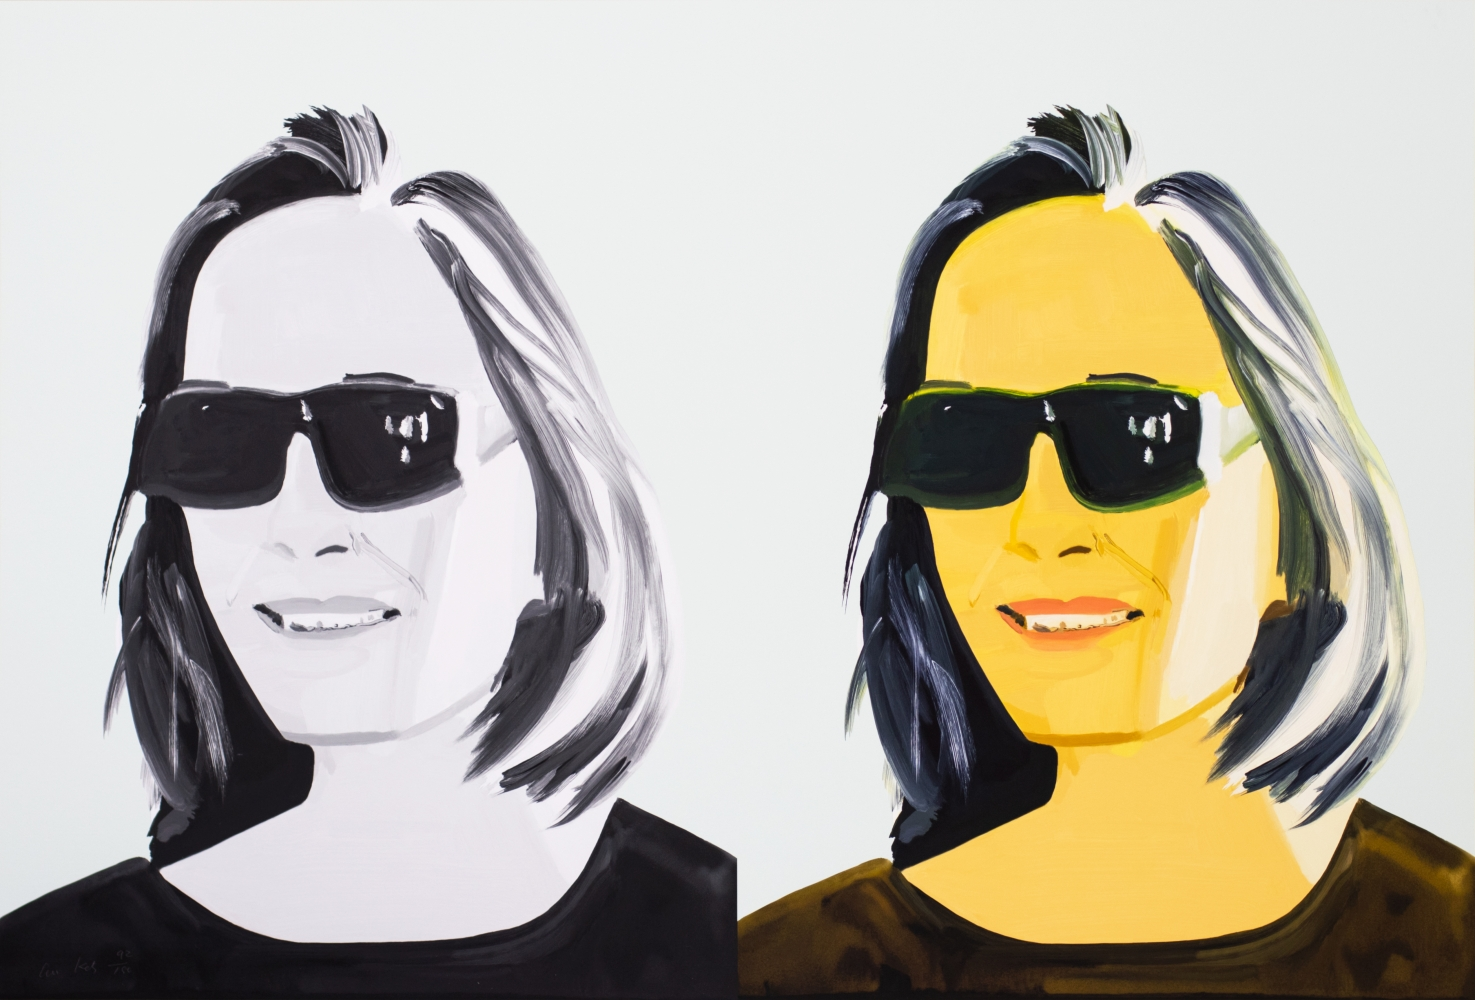 Alex Katz, Ada x's 2, 2020, Archival Pigment Ink on Innova Etching Cotton Rag gsm fine art paper, 38 x 48 inches, edition 92 of 150